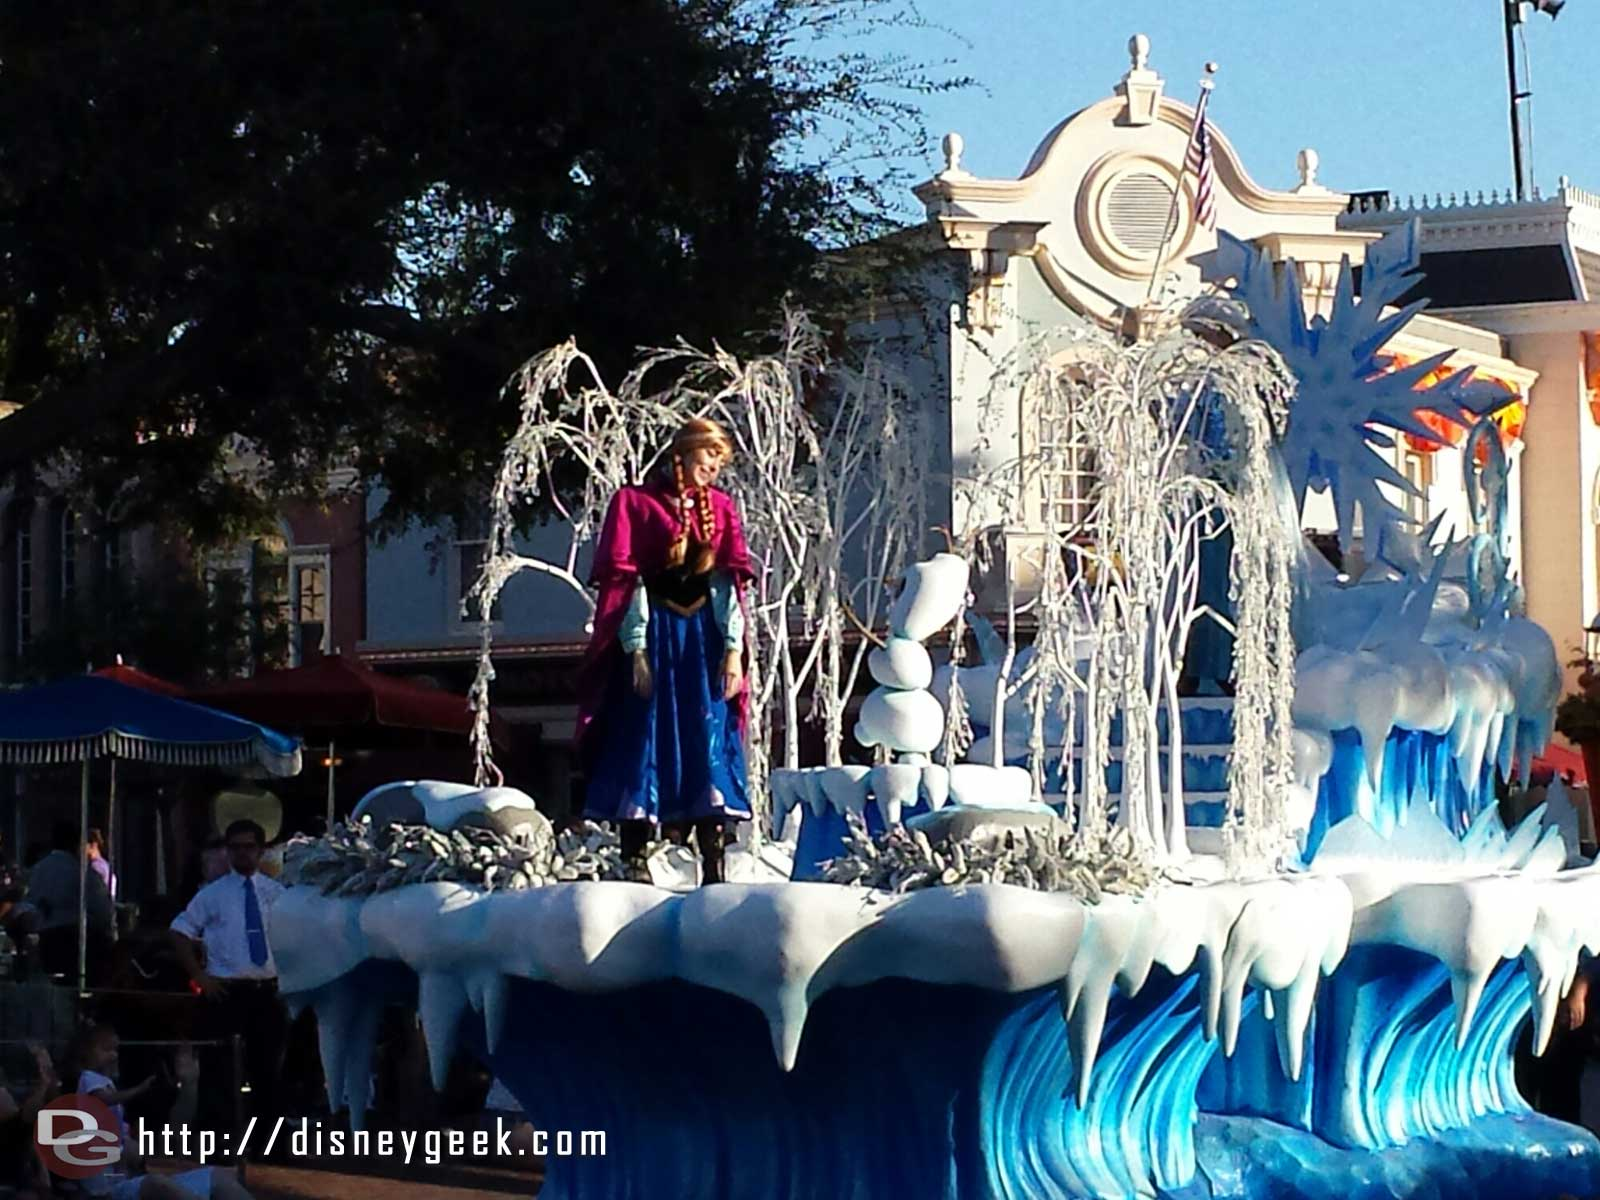 #Frozen preparade rolling by featuring Anna, Elsa, and Olaf #Disneyland